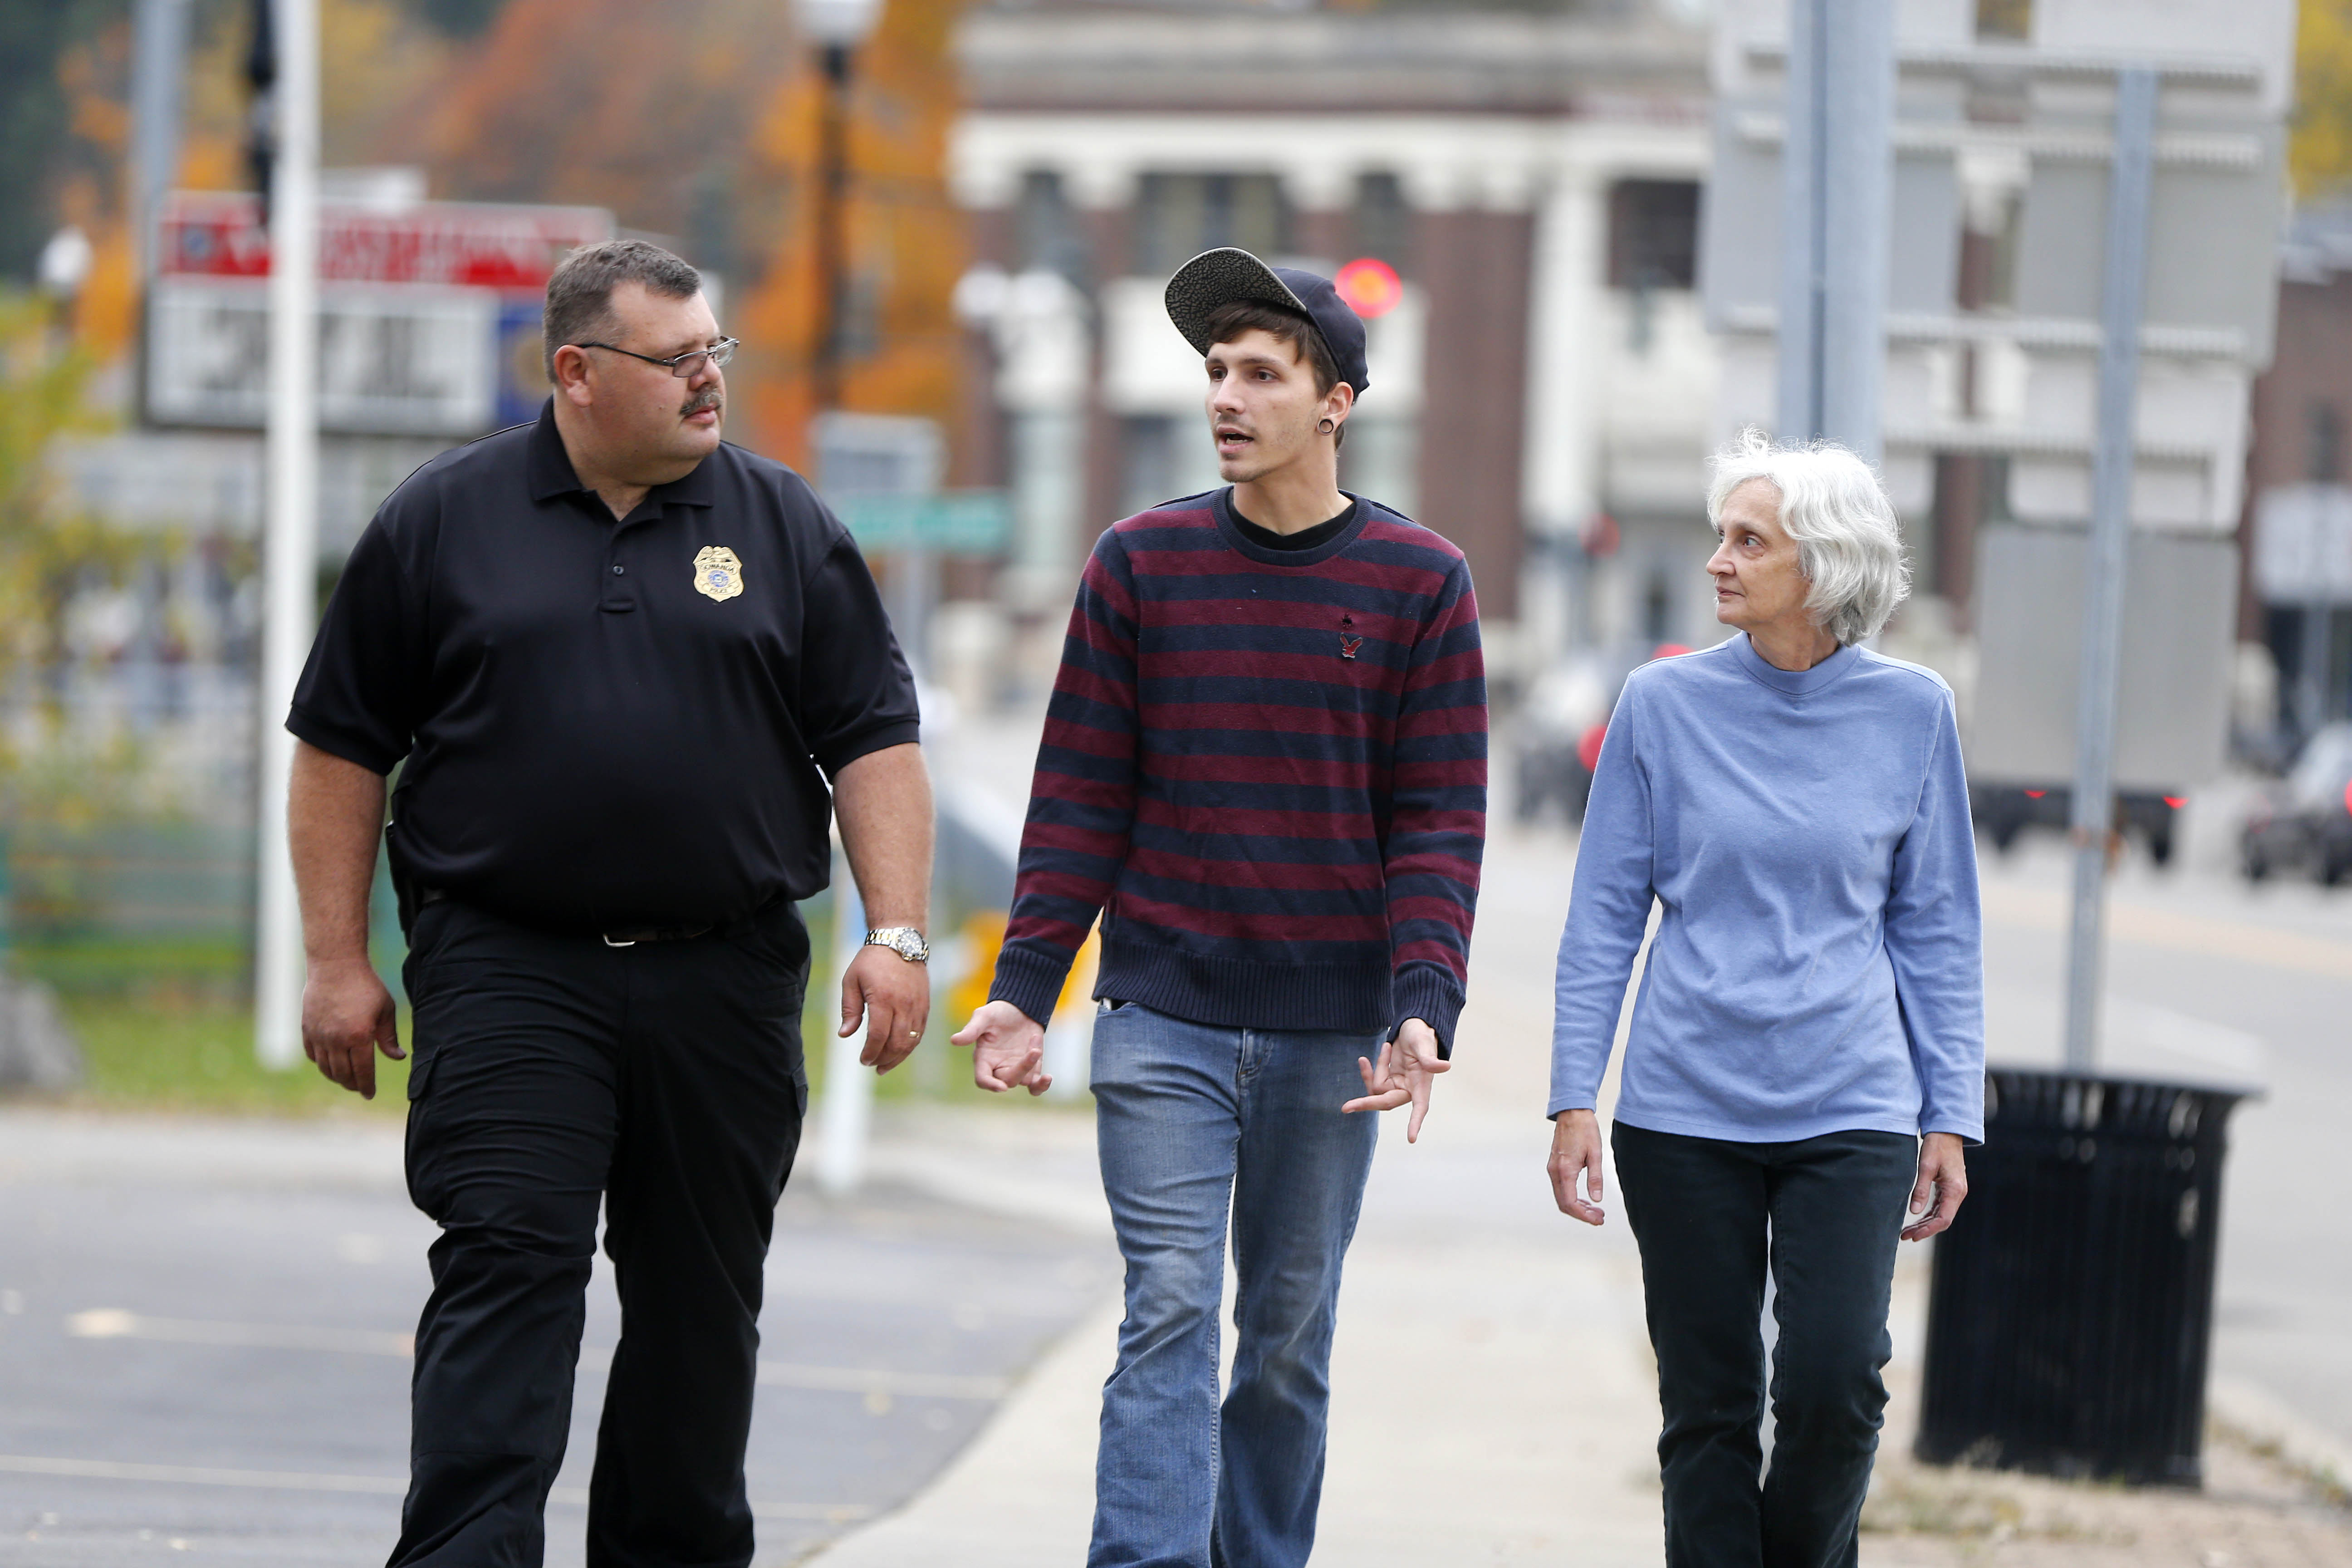 Gowanda Police Officer Steve Raiport, left, talks with Michael Witherell, center, and his mother Gloria Witherell, right, on Main St in Gowanda Wednesday, Nov. 2, 2016.   (Mark Mulville/Buffalo News)